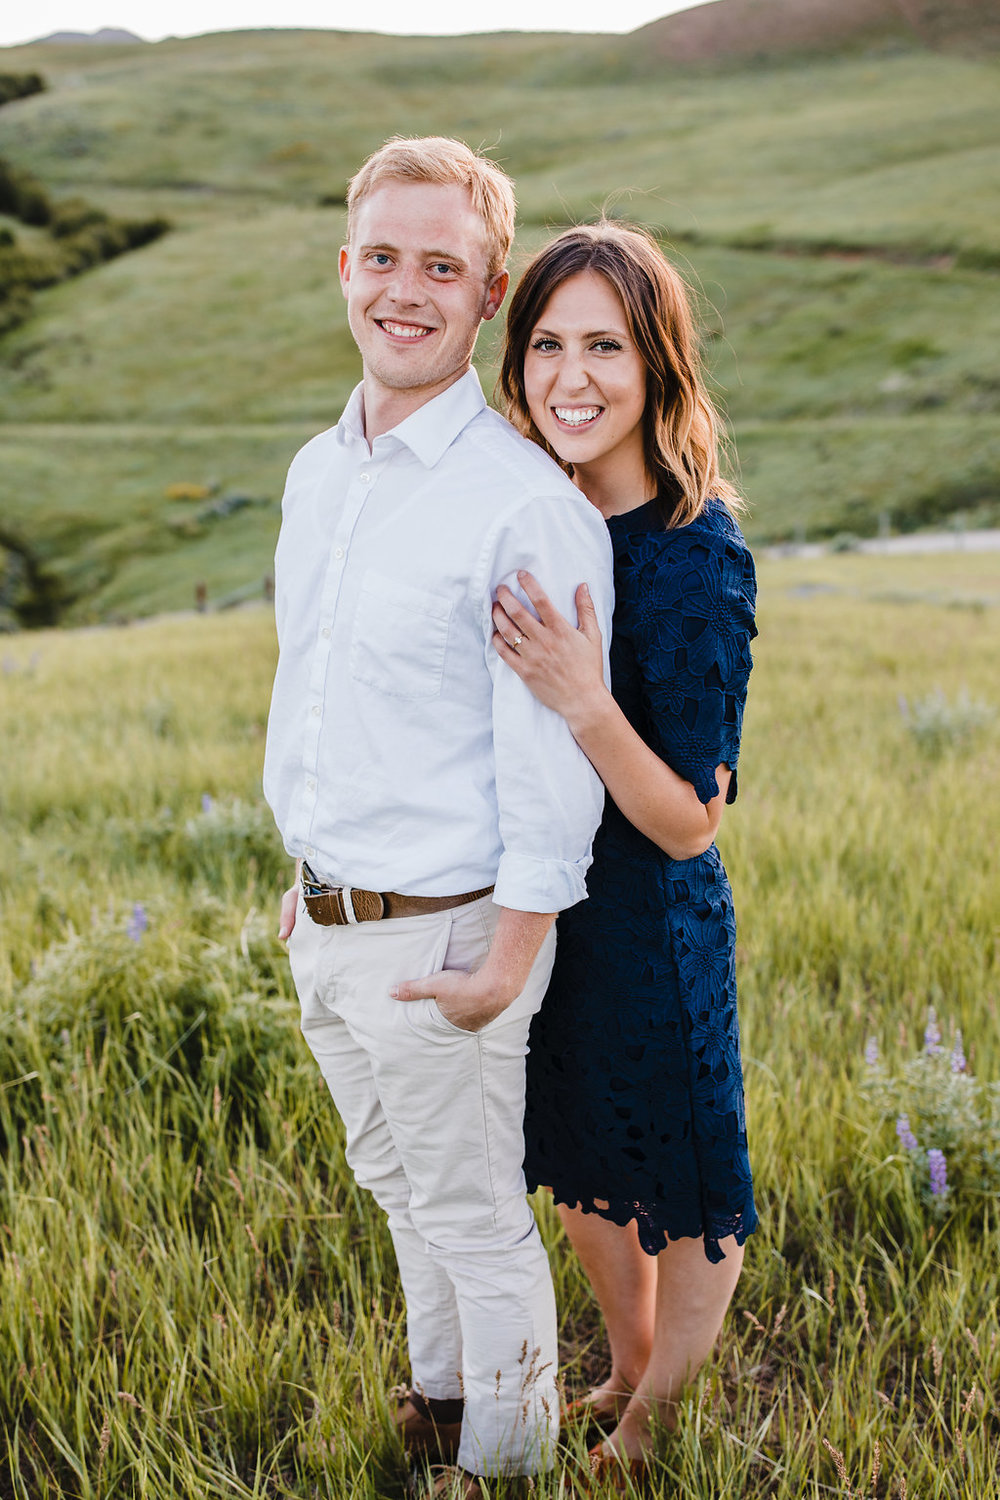 utah engagement photography calli richards formal engagement photos grassy fields